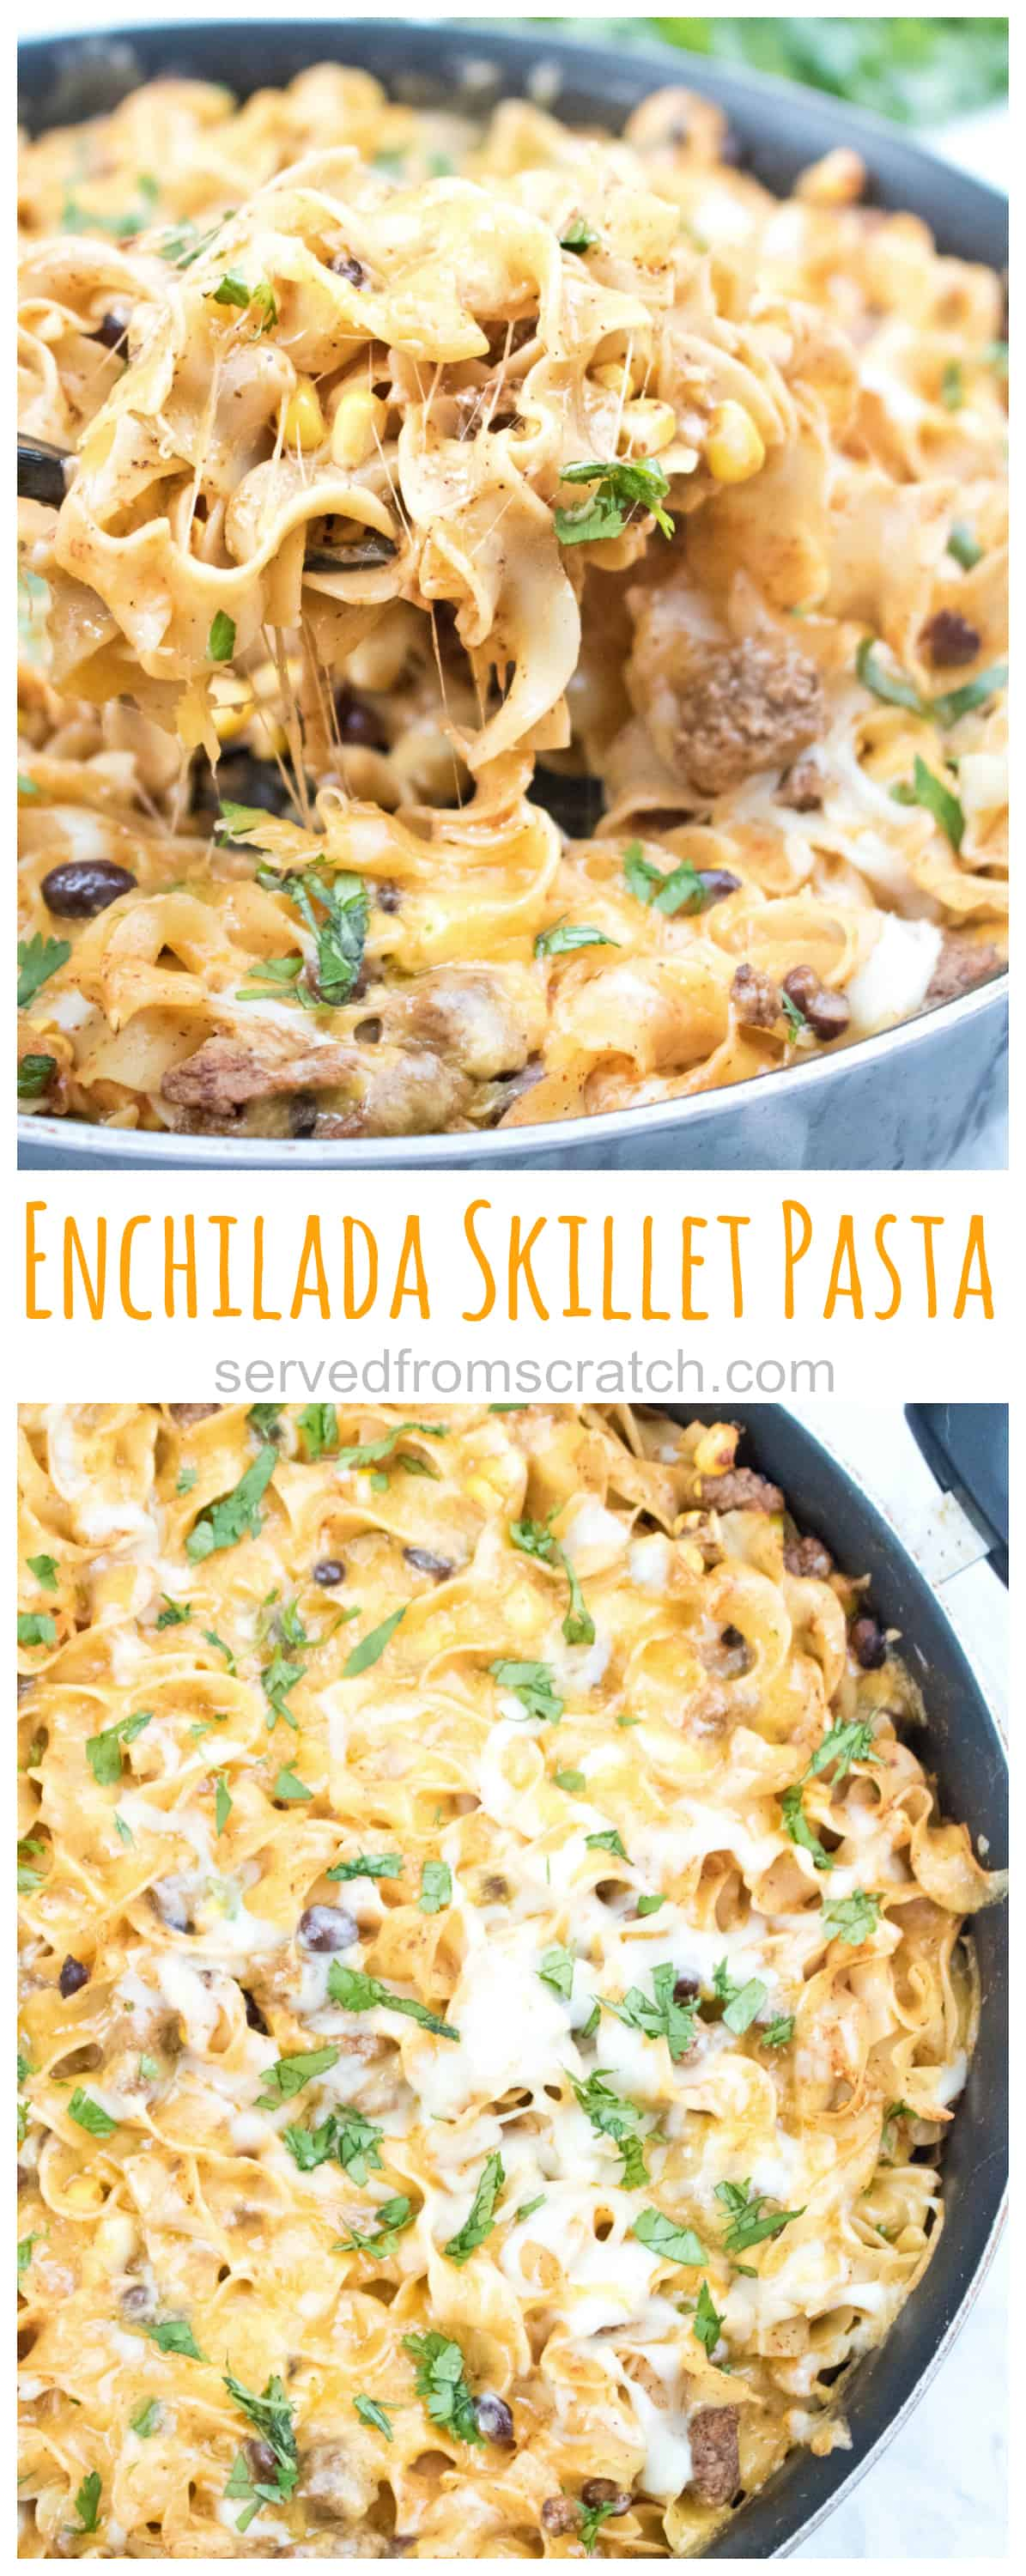 This Enchilada Skillet Pasta is loaded with flavor and cheese making it a delicious, easy and comfort food at it's finest!